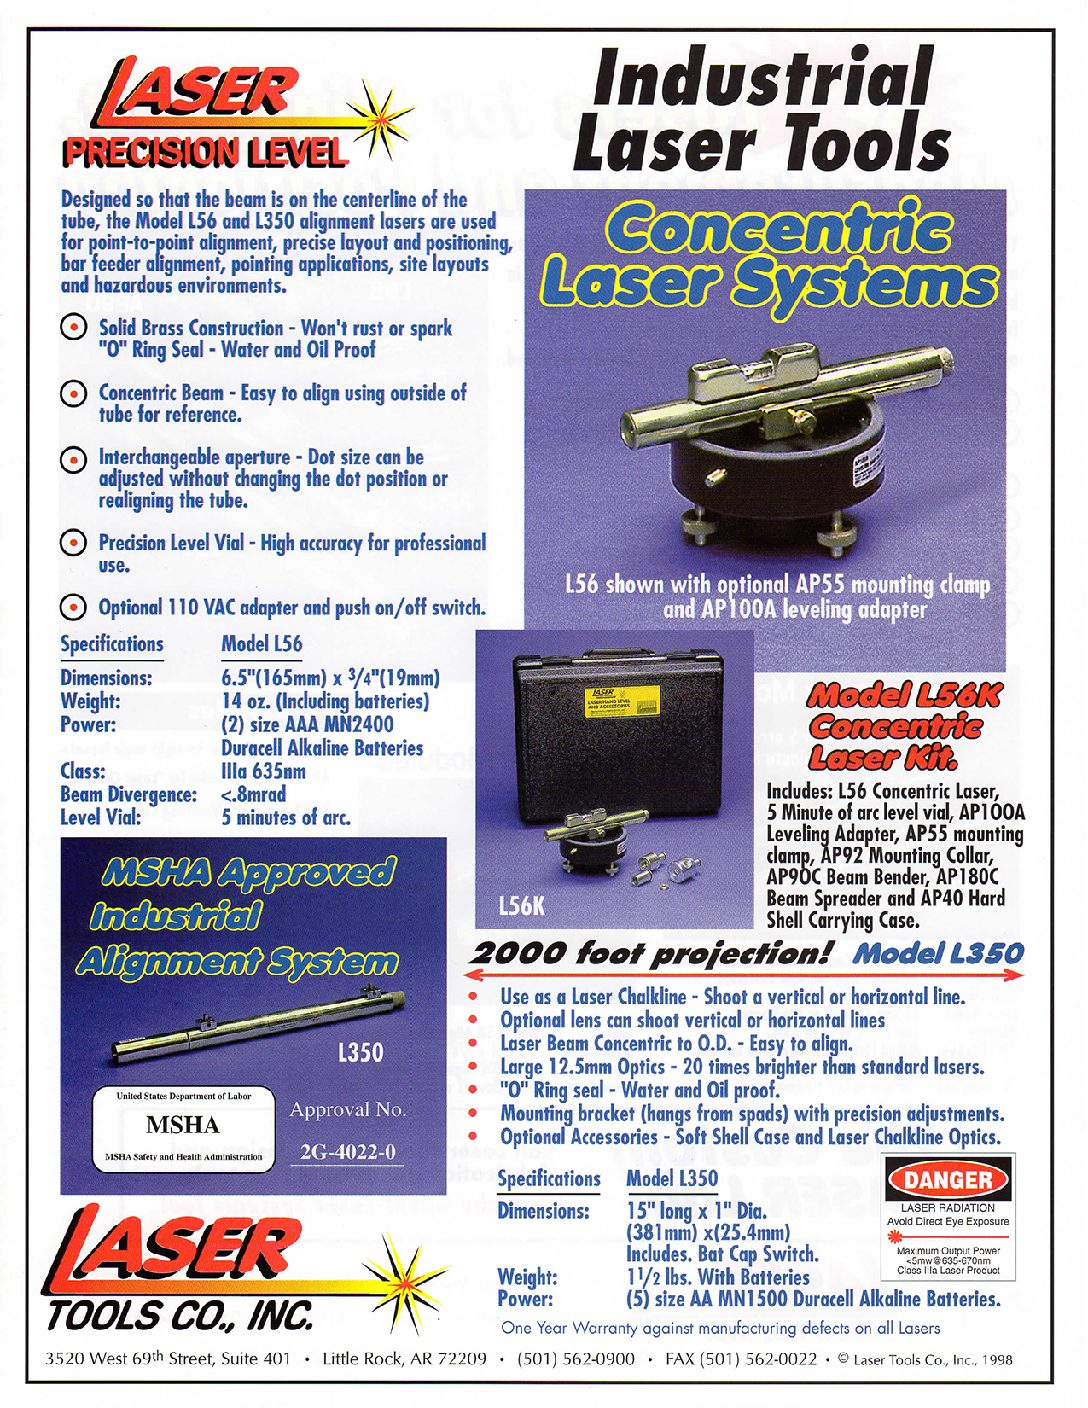 Laser Tools Co  | AP180C Beam Spreader™